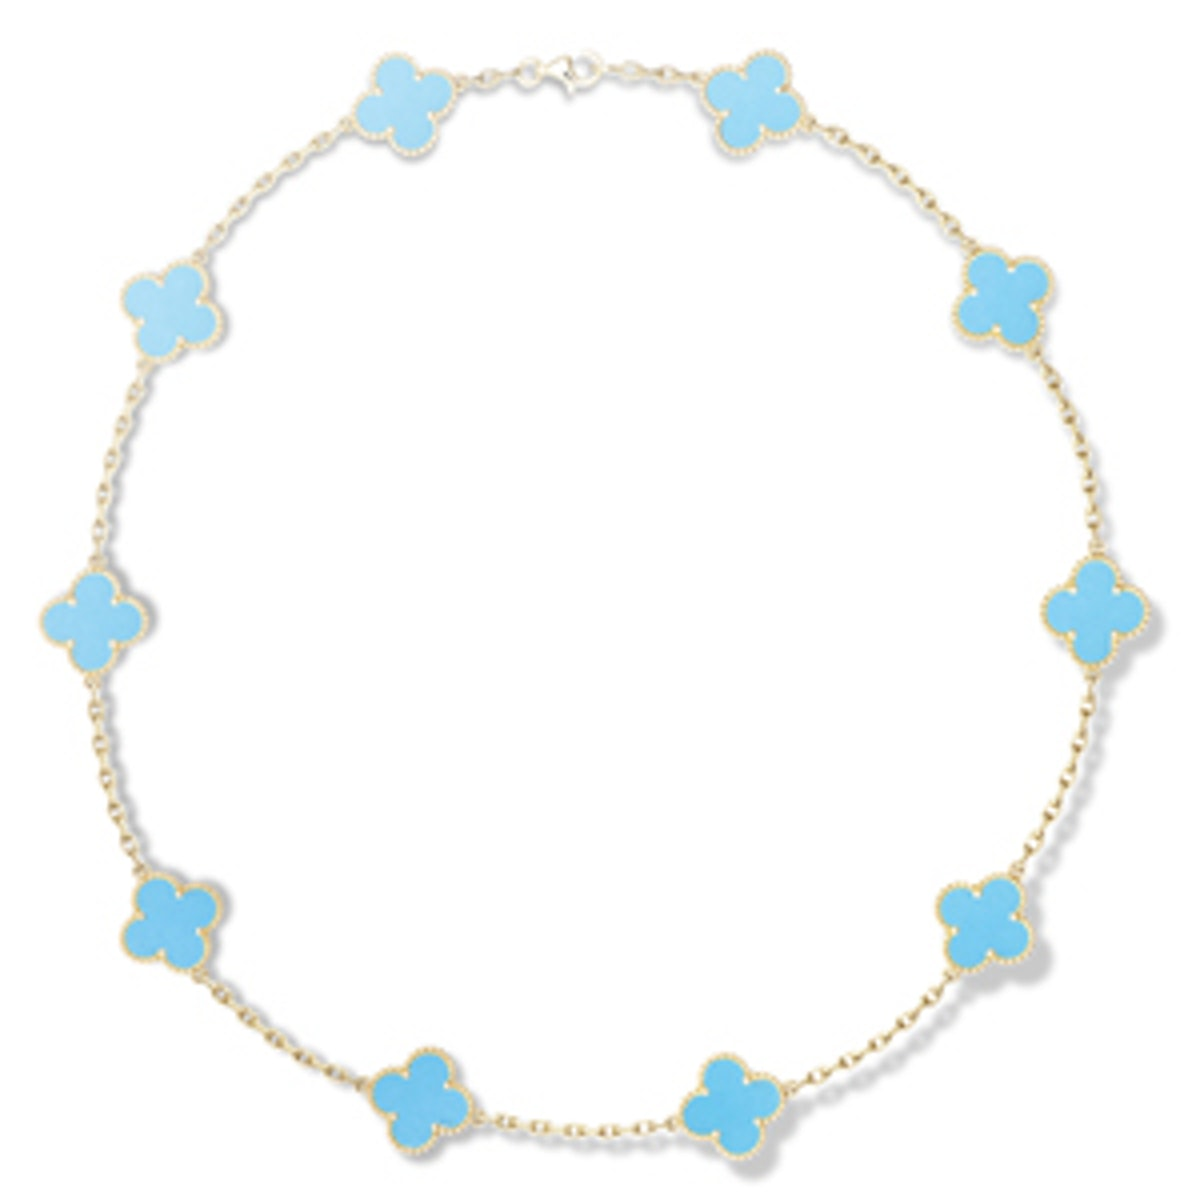 Vintage Alhambra Yellow Gold & Turquoise Necklace